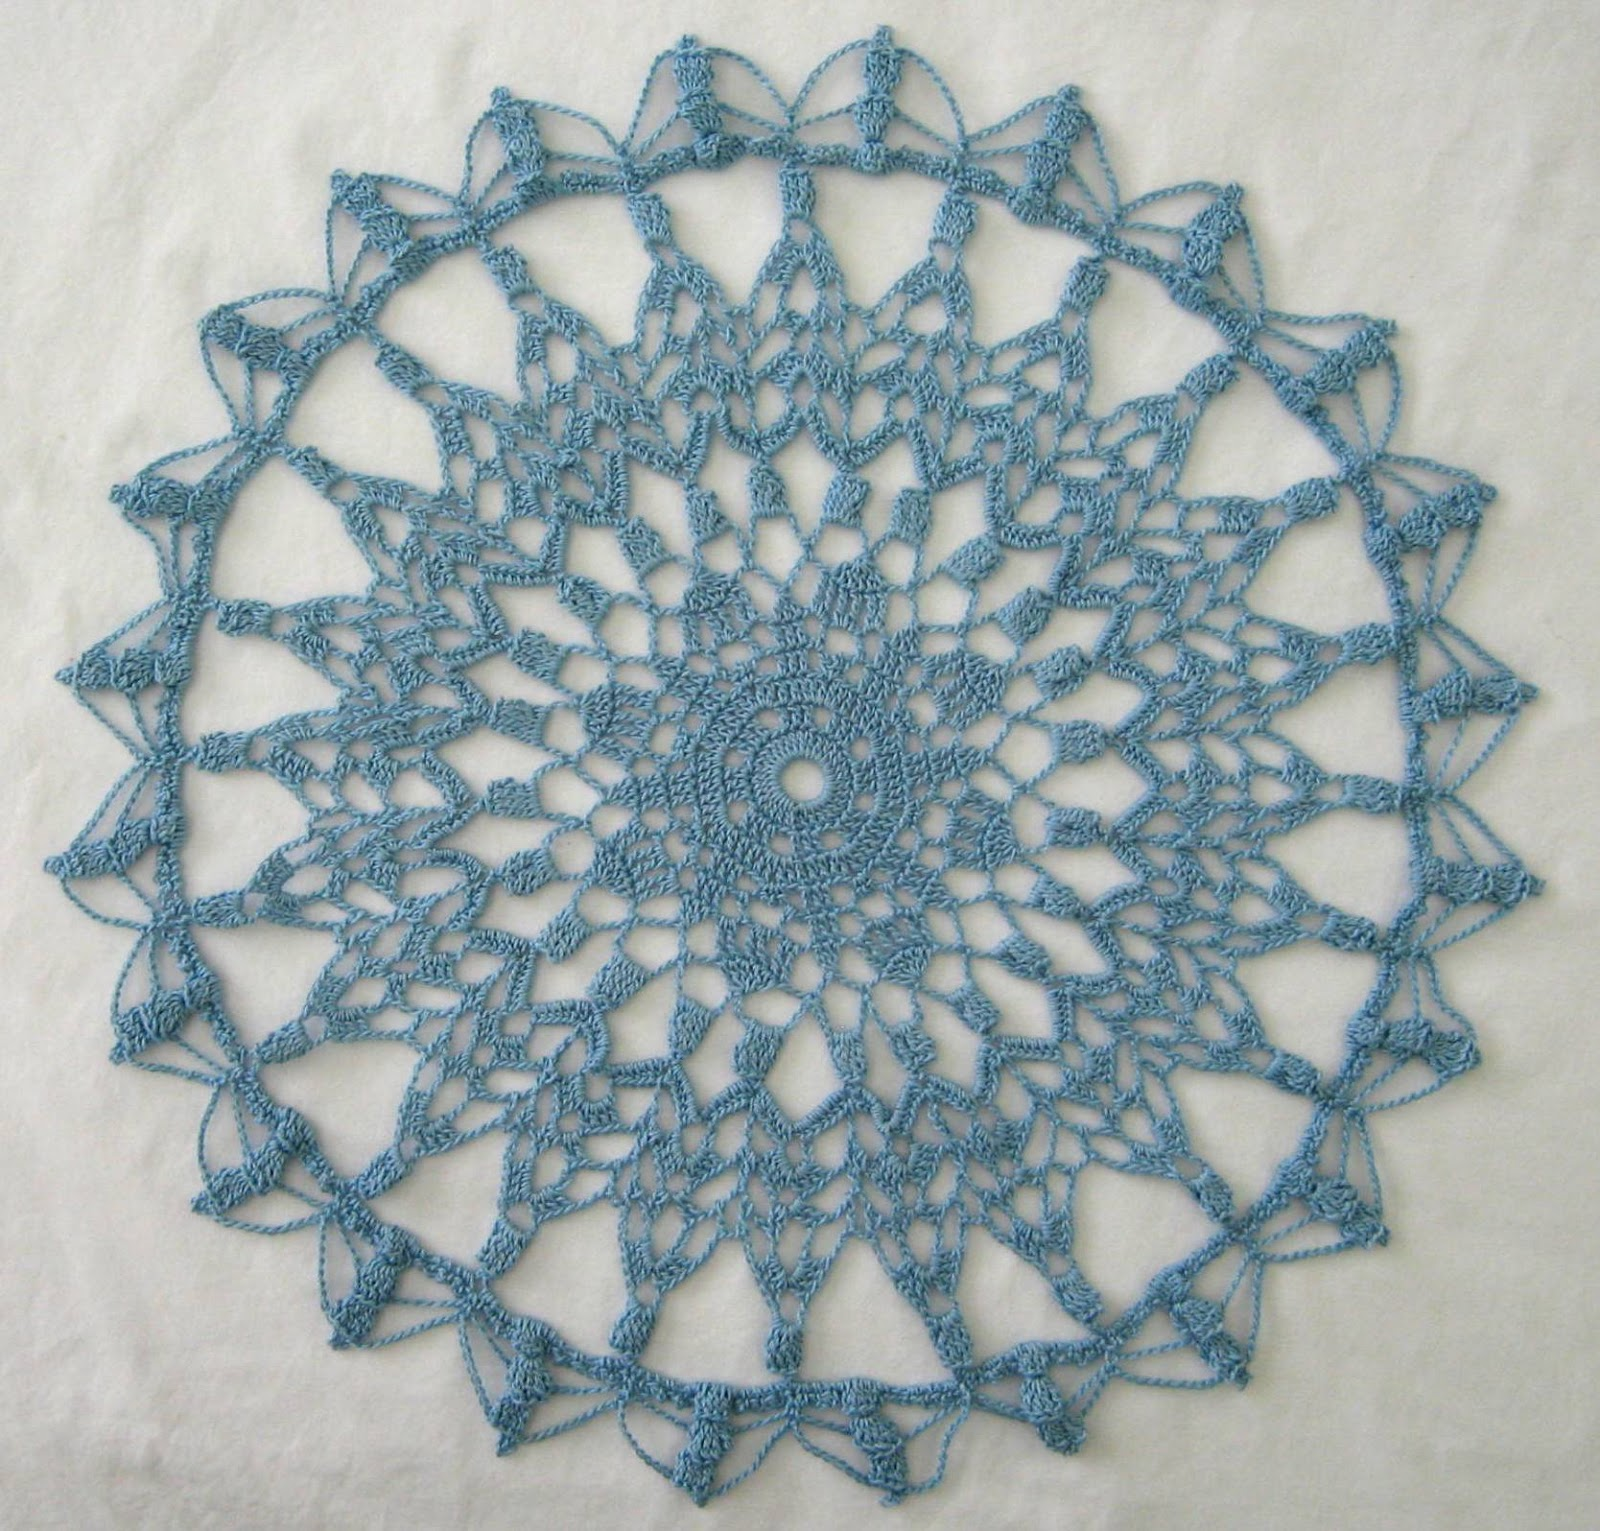 Large Oval Centerpiece Doily crochet PATTERN | eBay